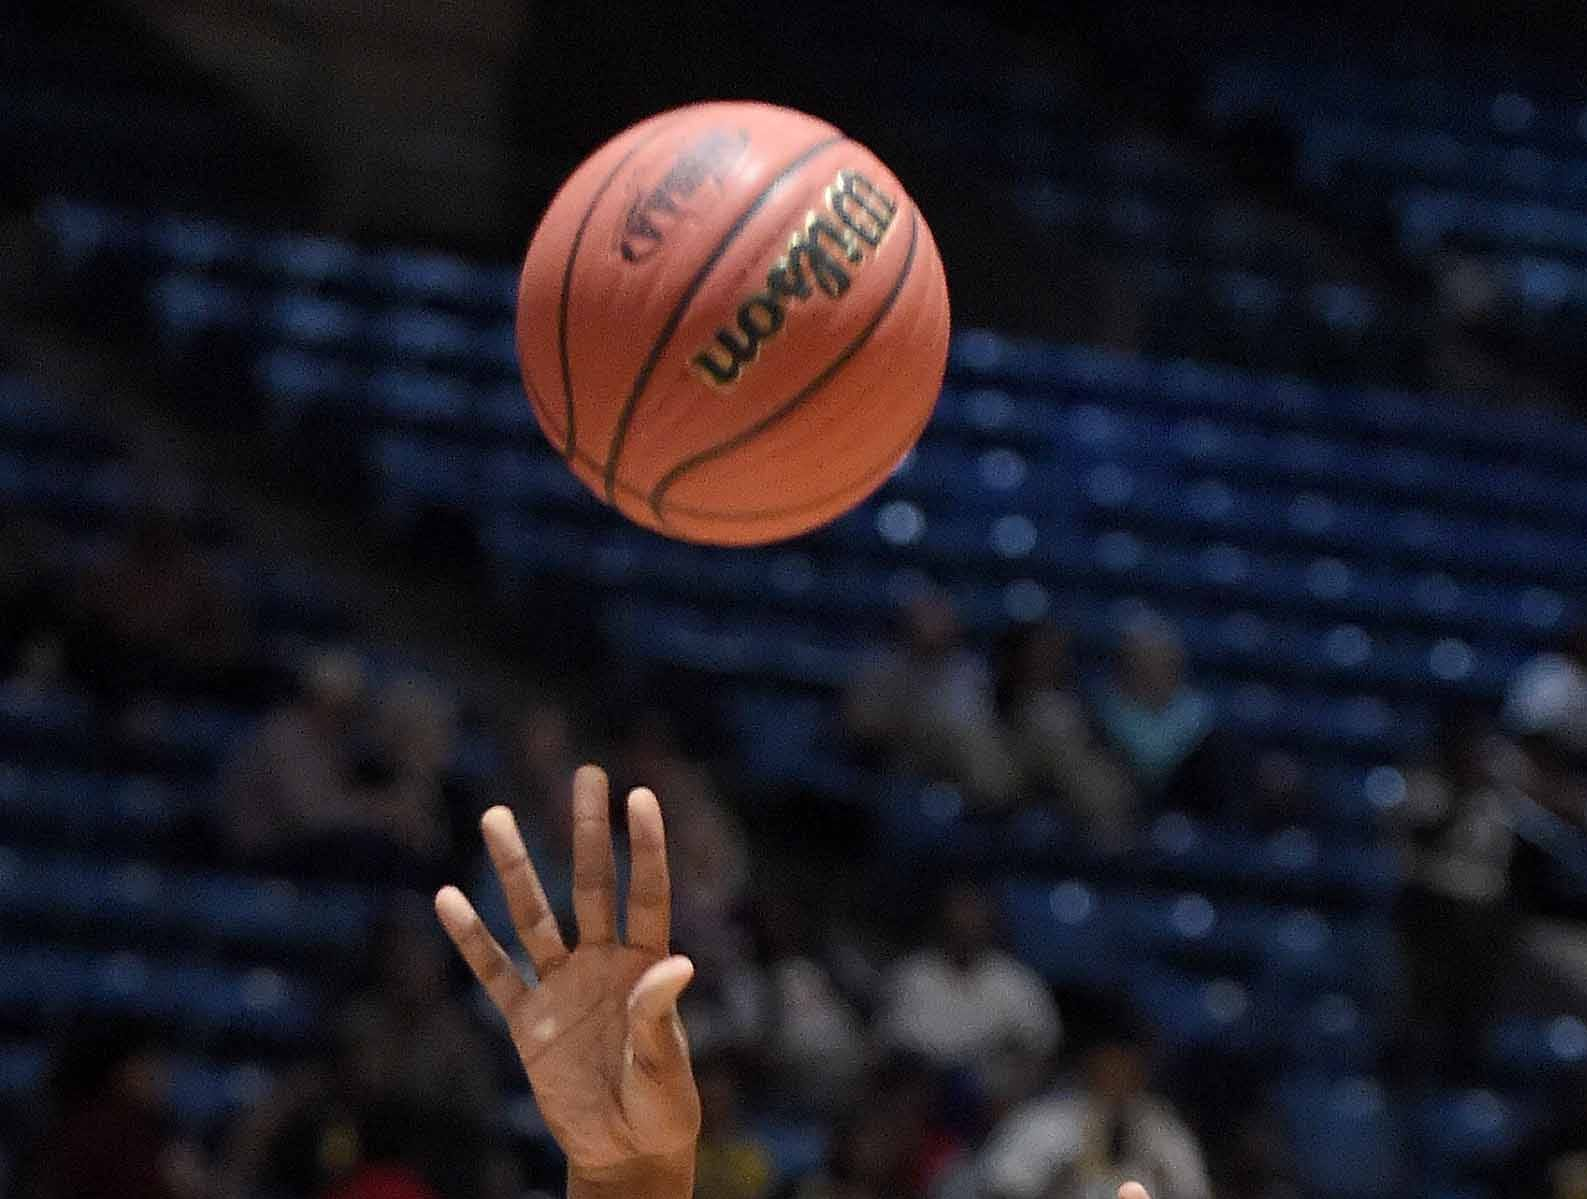 Holly Springs' Derek Fountain (20) shoots against Velma Jackson in the finals of the MHSAA C Spire State Basketball Championships at the Mississippi Coliseum in Jackson, Miss., on Saturday, March 9, 2019.